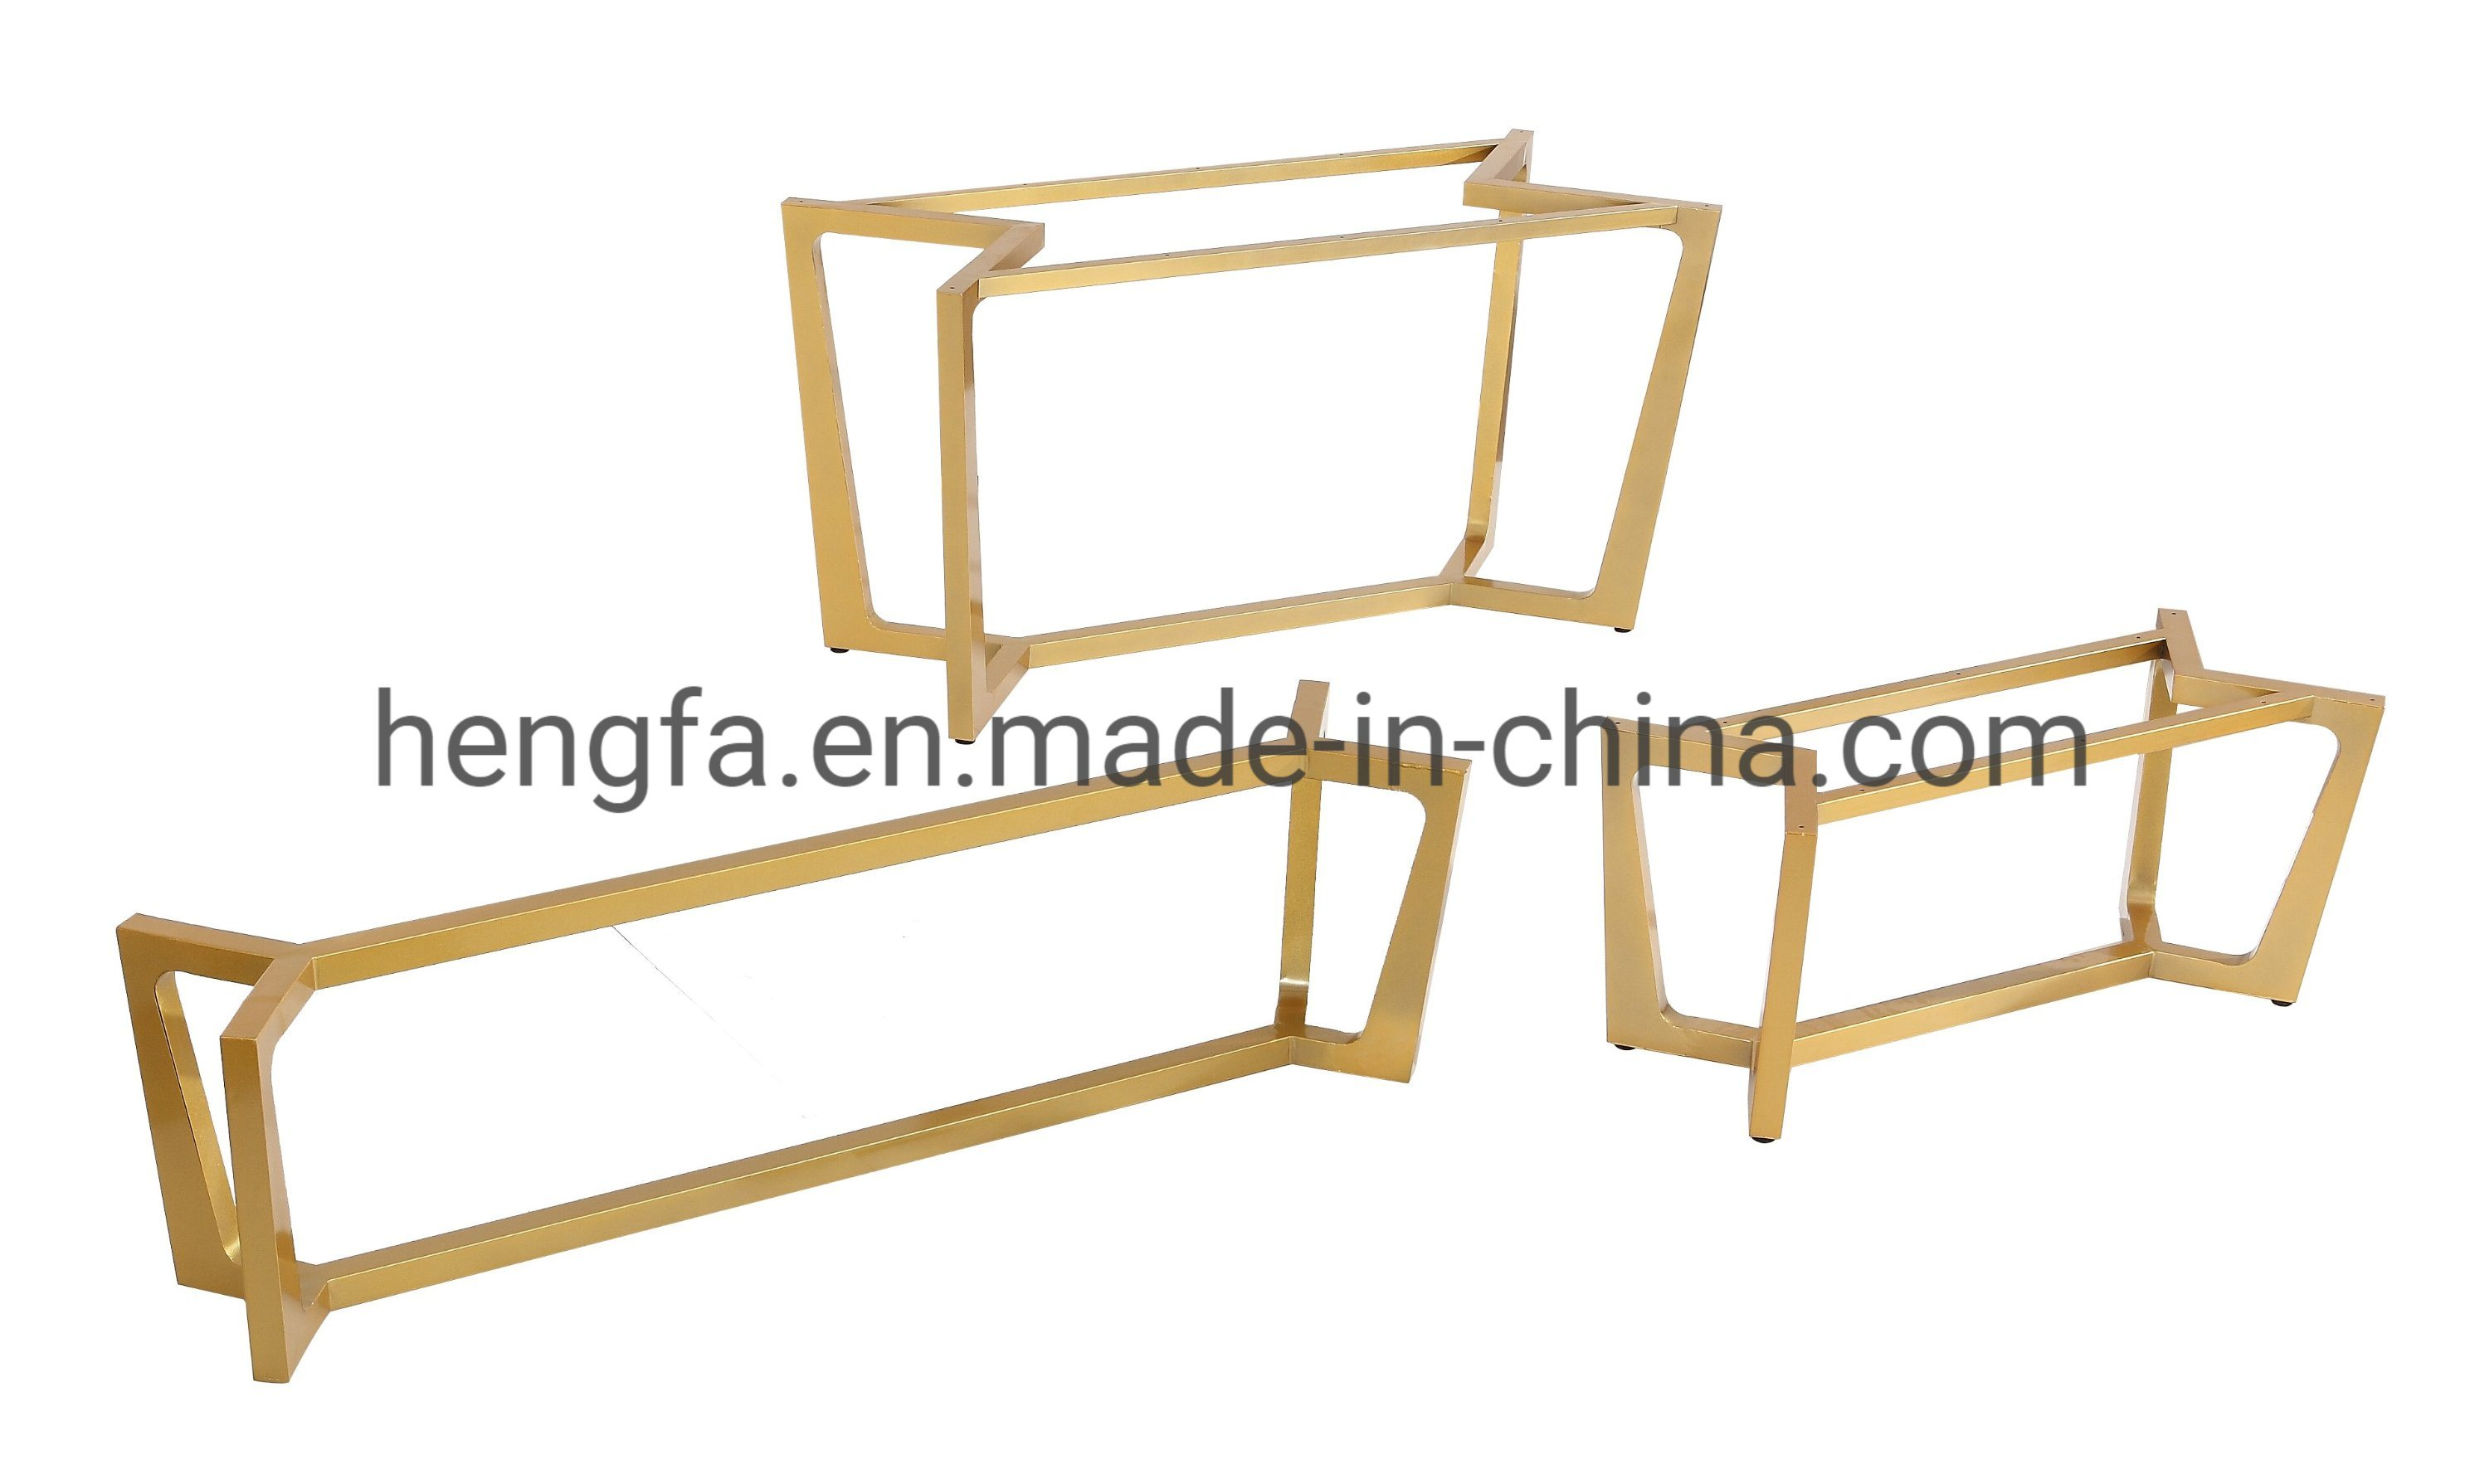 China Modern Stainless Steel Bar Table Legs Tea Table Frame Cafe Photos Pictures Made In China Com